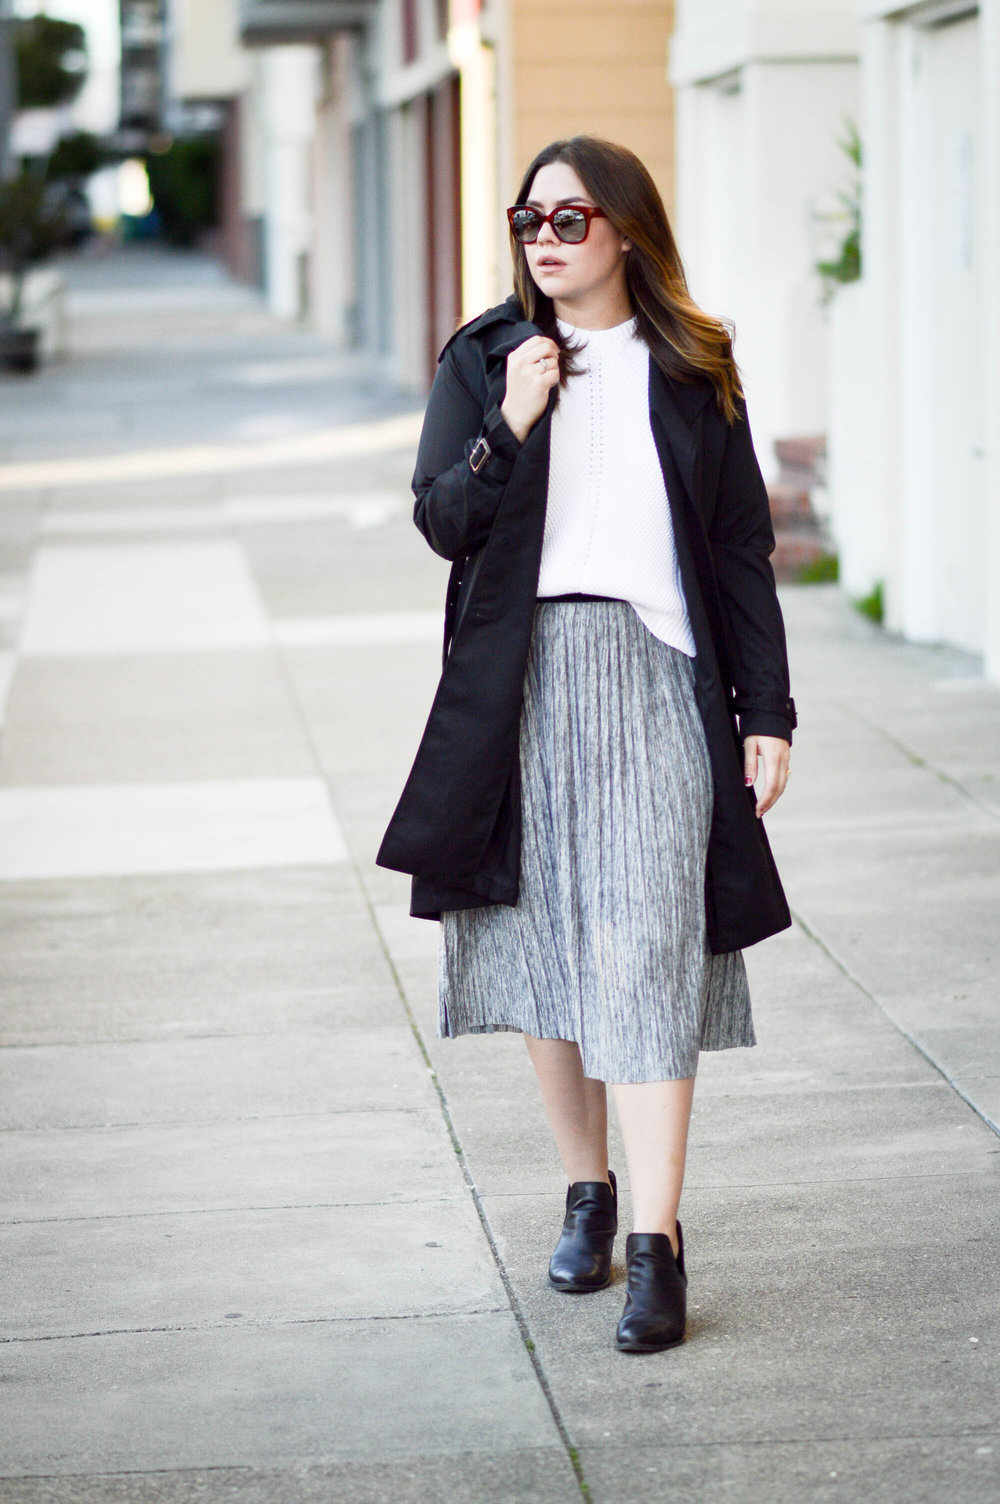 Pleated Skirt & Trench Coat via. www.birdieshoots.com